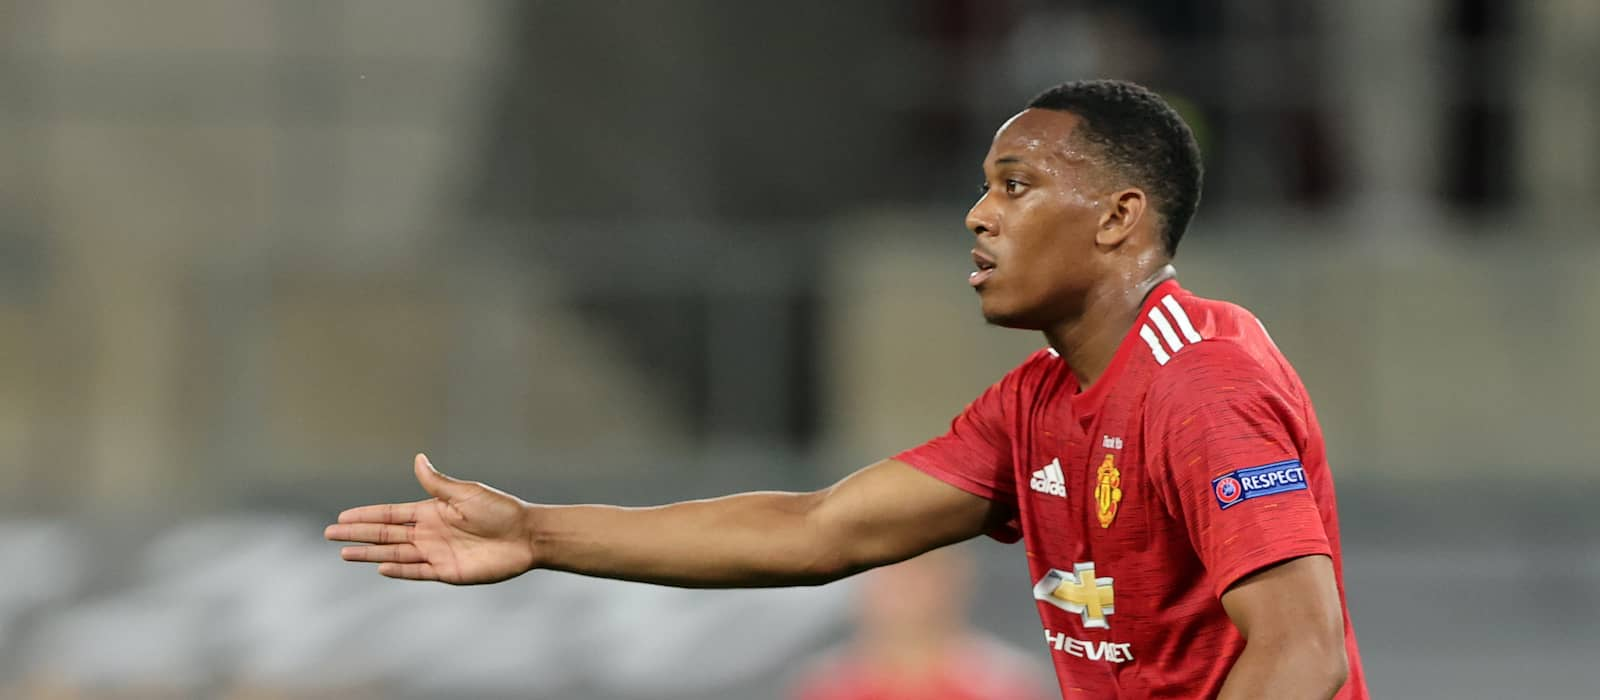 Manchester United fans denounce Paul Scholes' attack on Anthony Martial